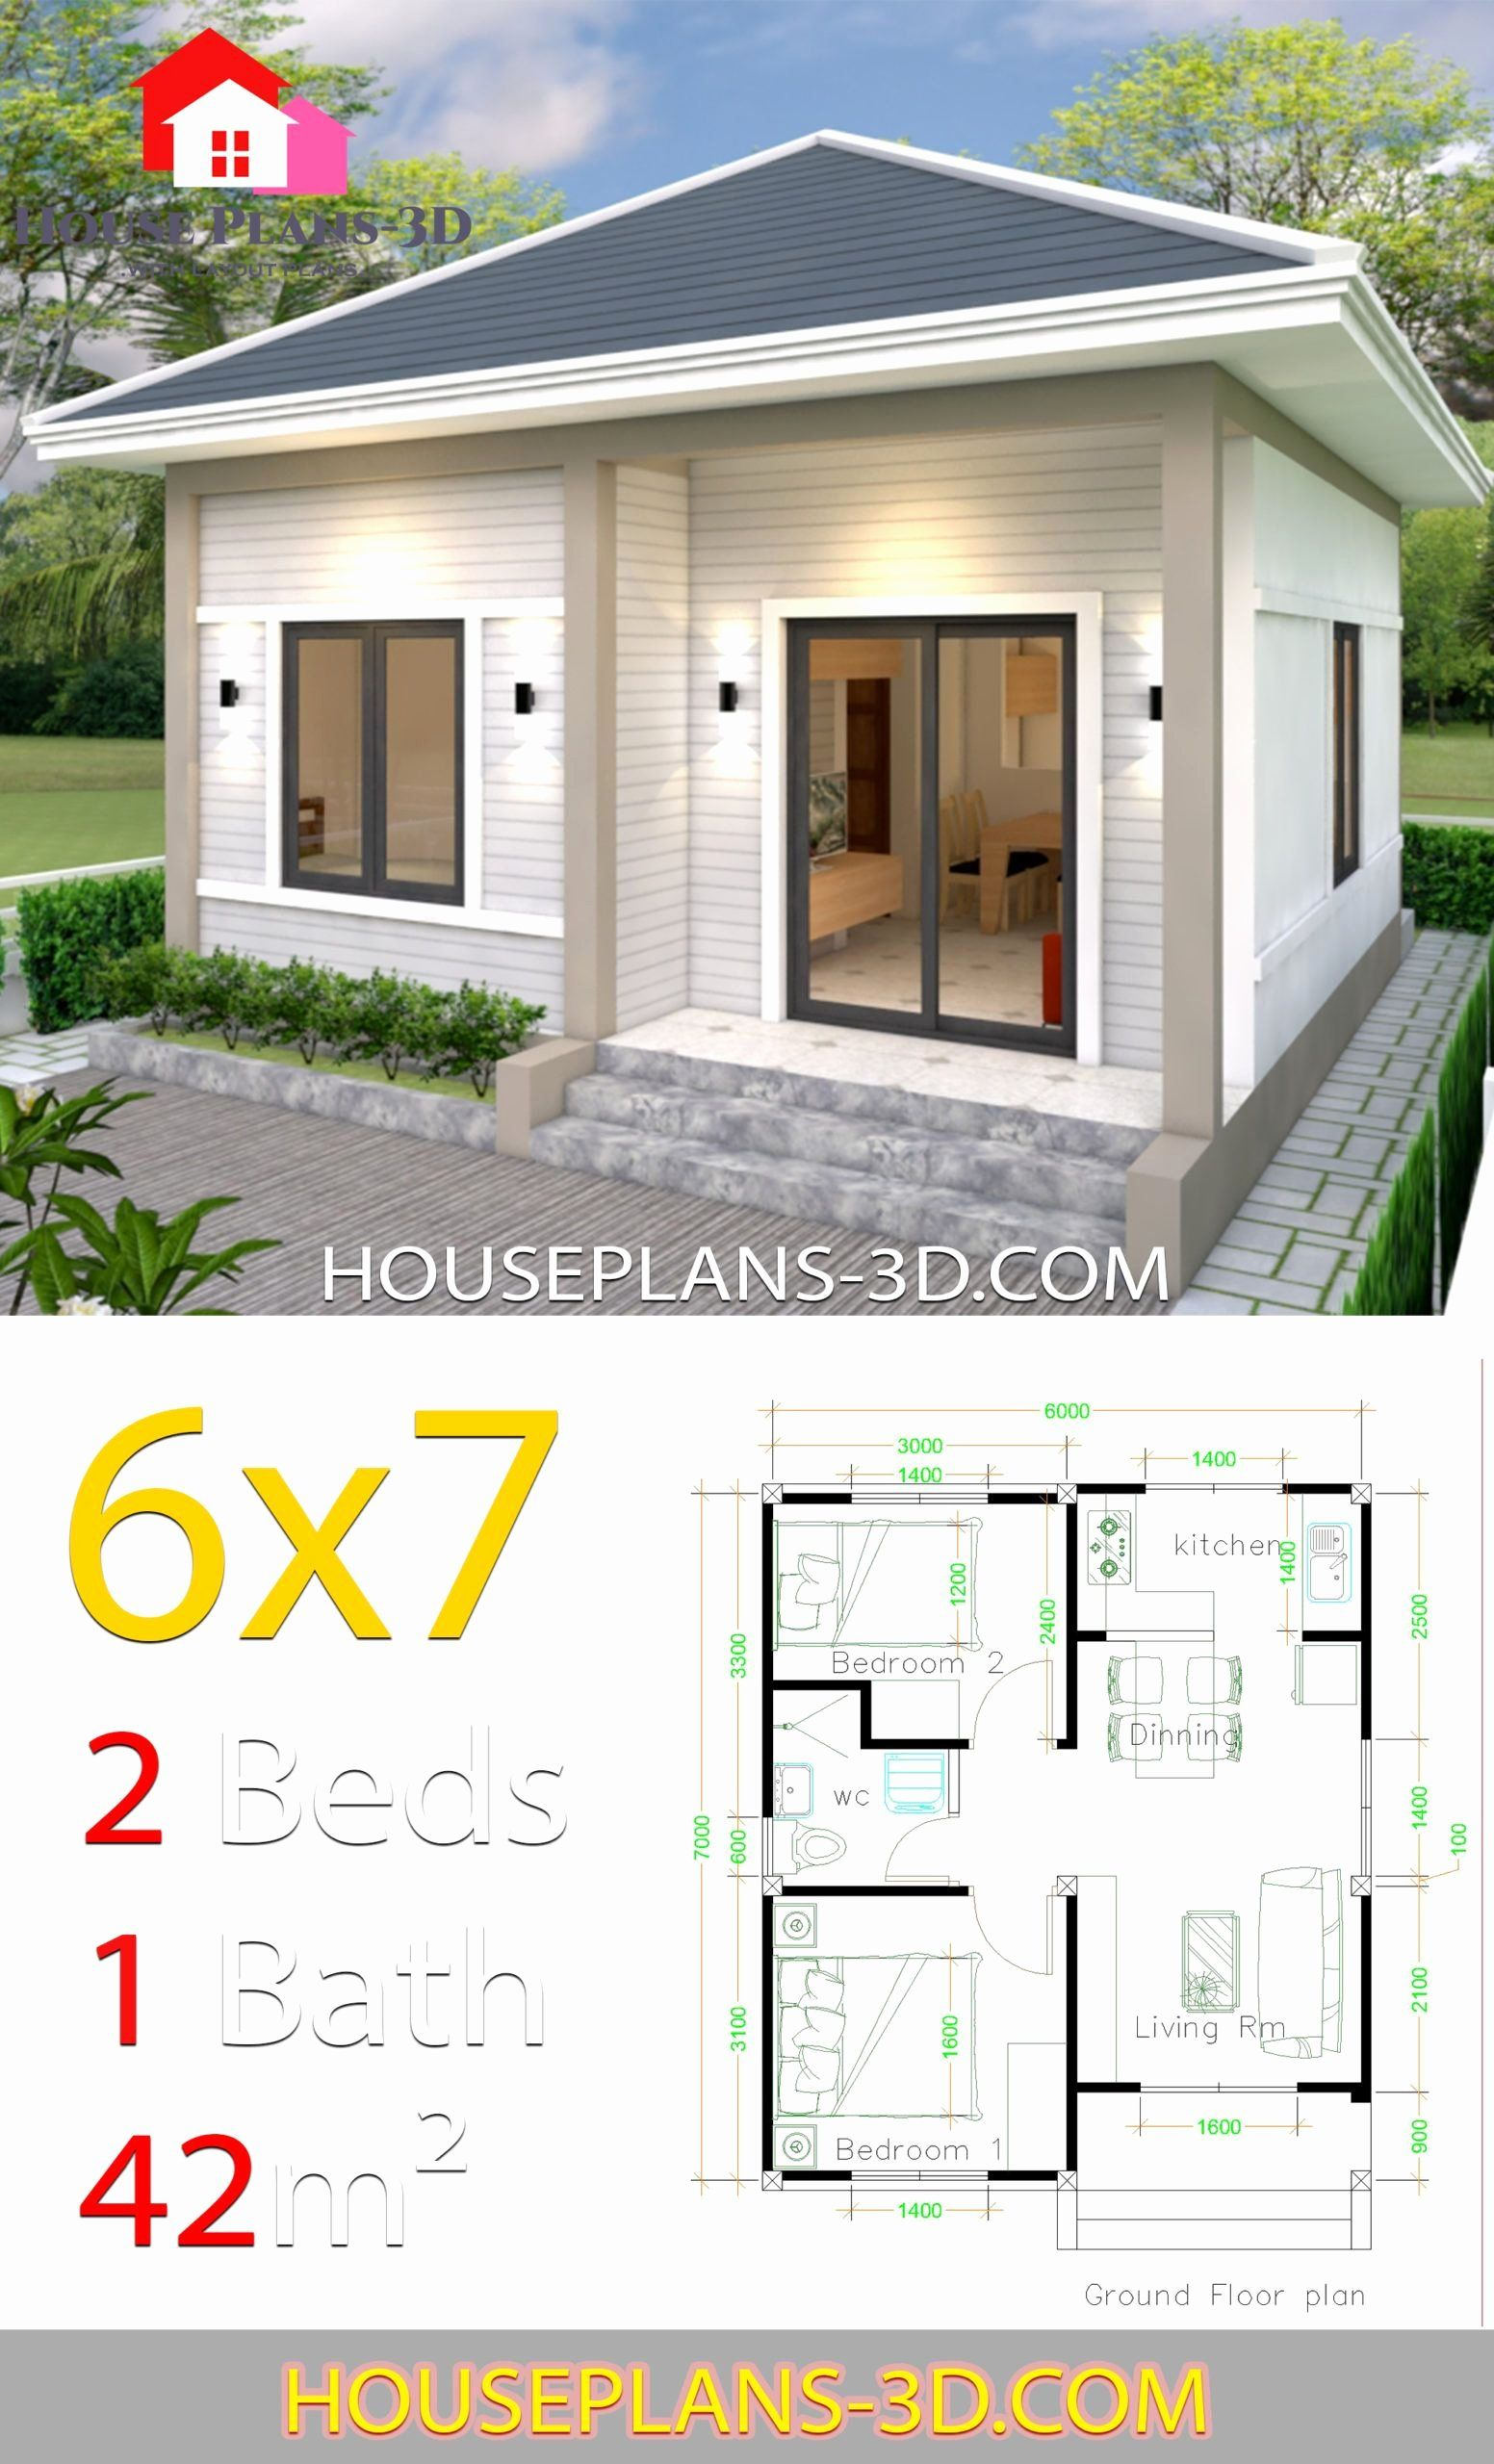 Two Bedroom House Design Pictures Unique Simple House Plans 6x7 With 2 Bedrooms Hip Roof In 202 In 2020 Simple House Design Small House Design Small House Design Plans